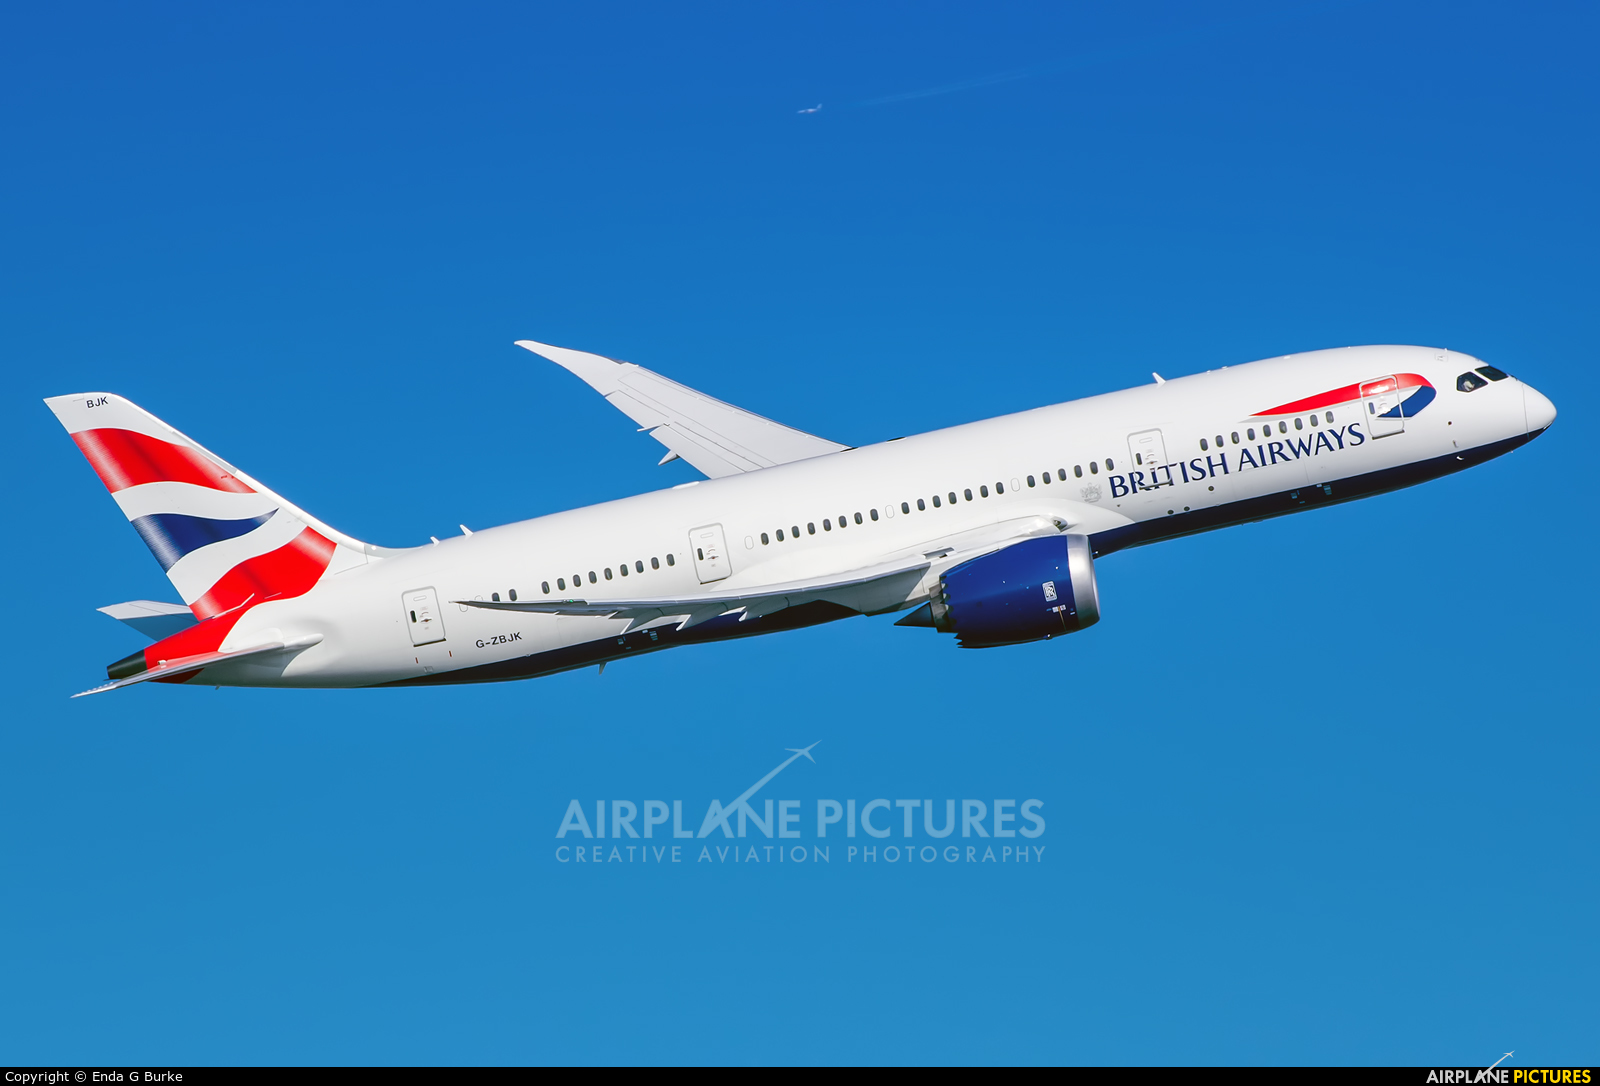 British Airways G-ZBJK aircraft at London - Heathrow